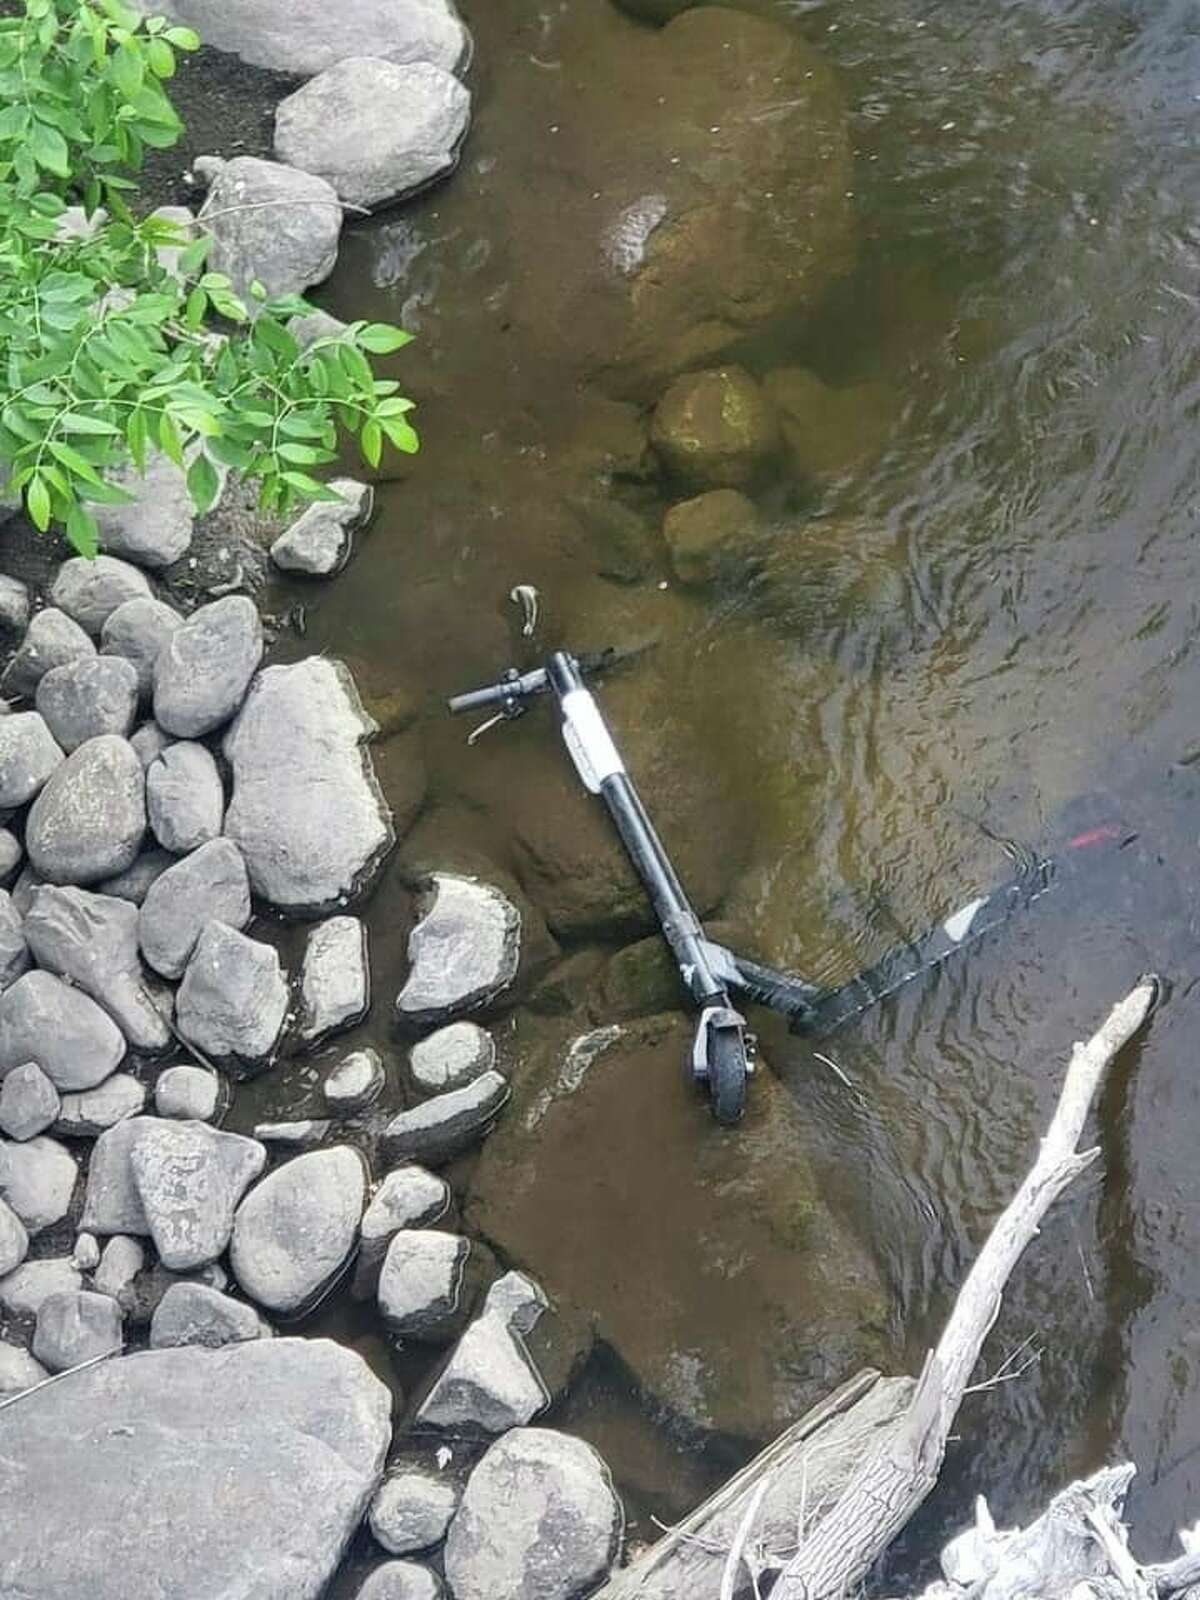 Concerns regarding misuse and negligent discarding of the Bird E-scooters was noted by residents with some scooters being found in the creeks and riverbanks in Big Rapids and others seen completely broken. (Submitted photo)